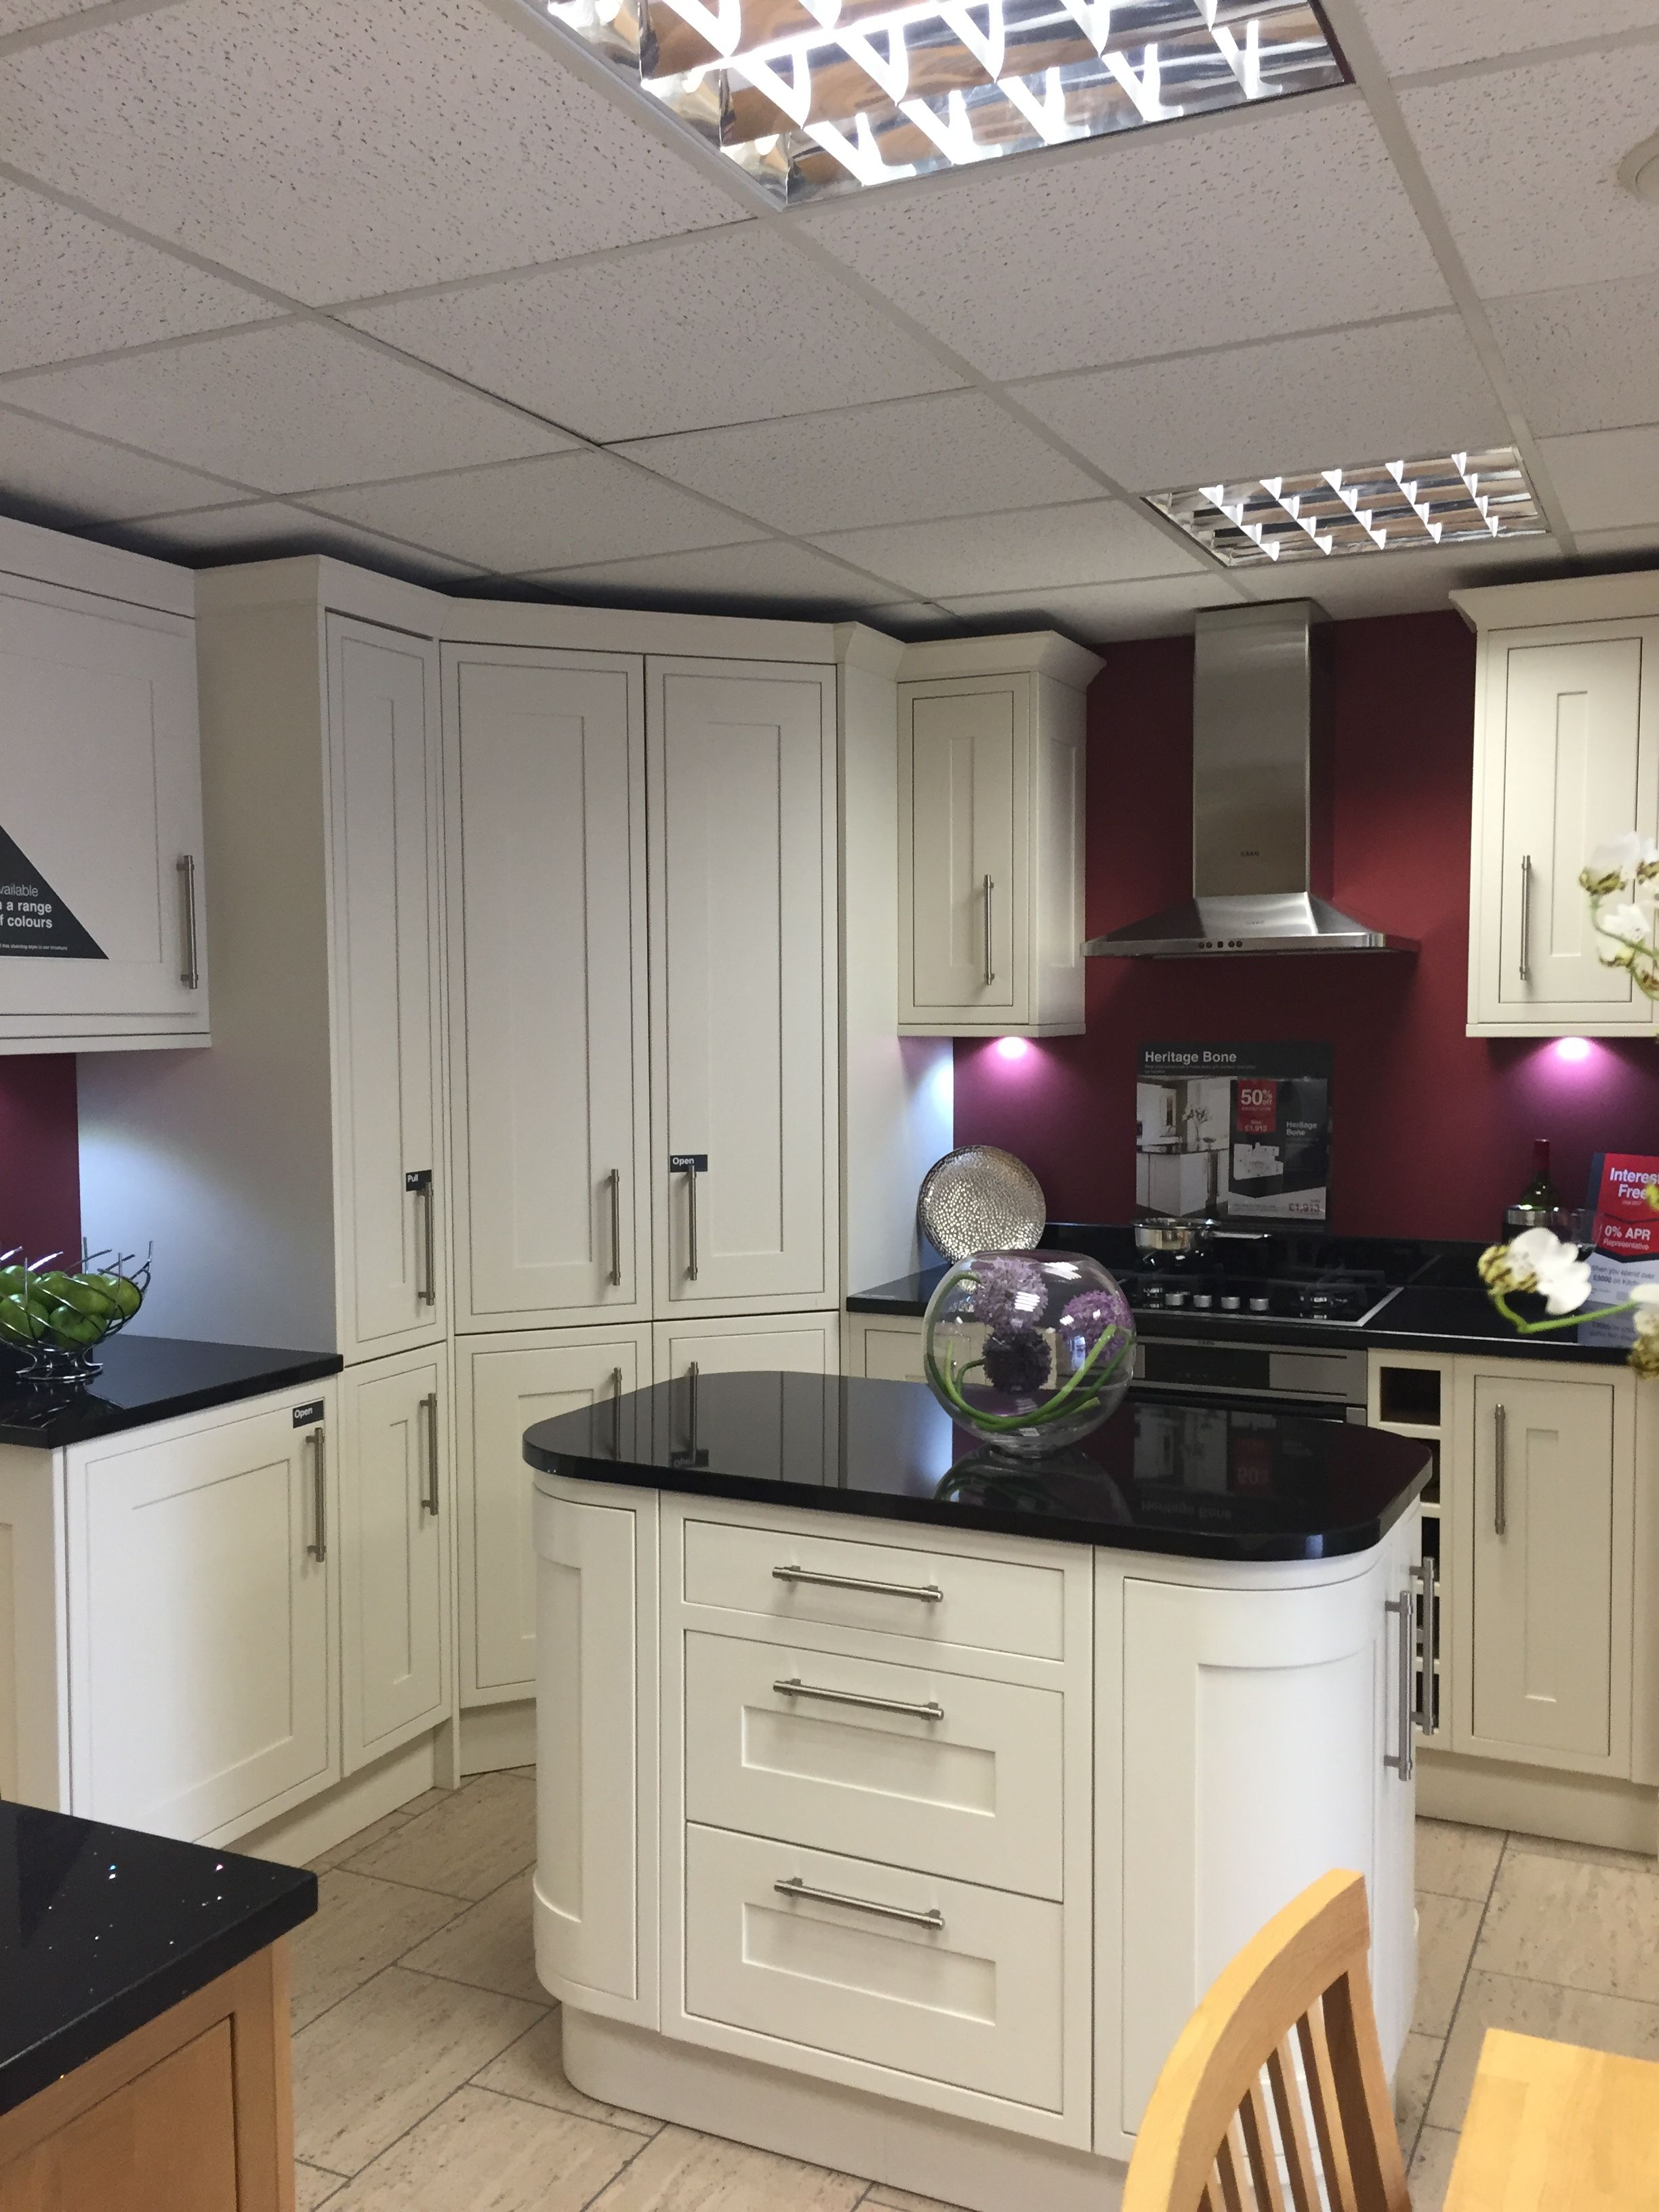 Wickes Kitchen Furniture We Love This Kitchen Style And Layout Shaker Bone Wickes